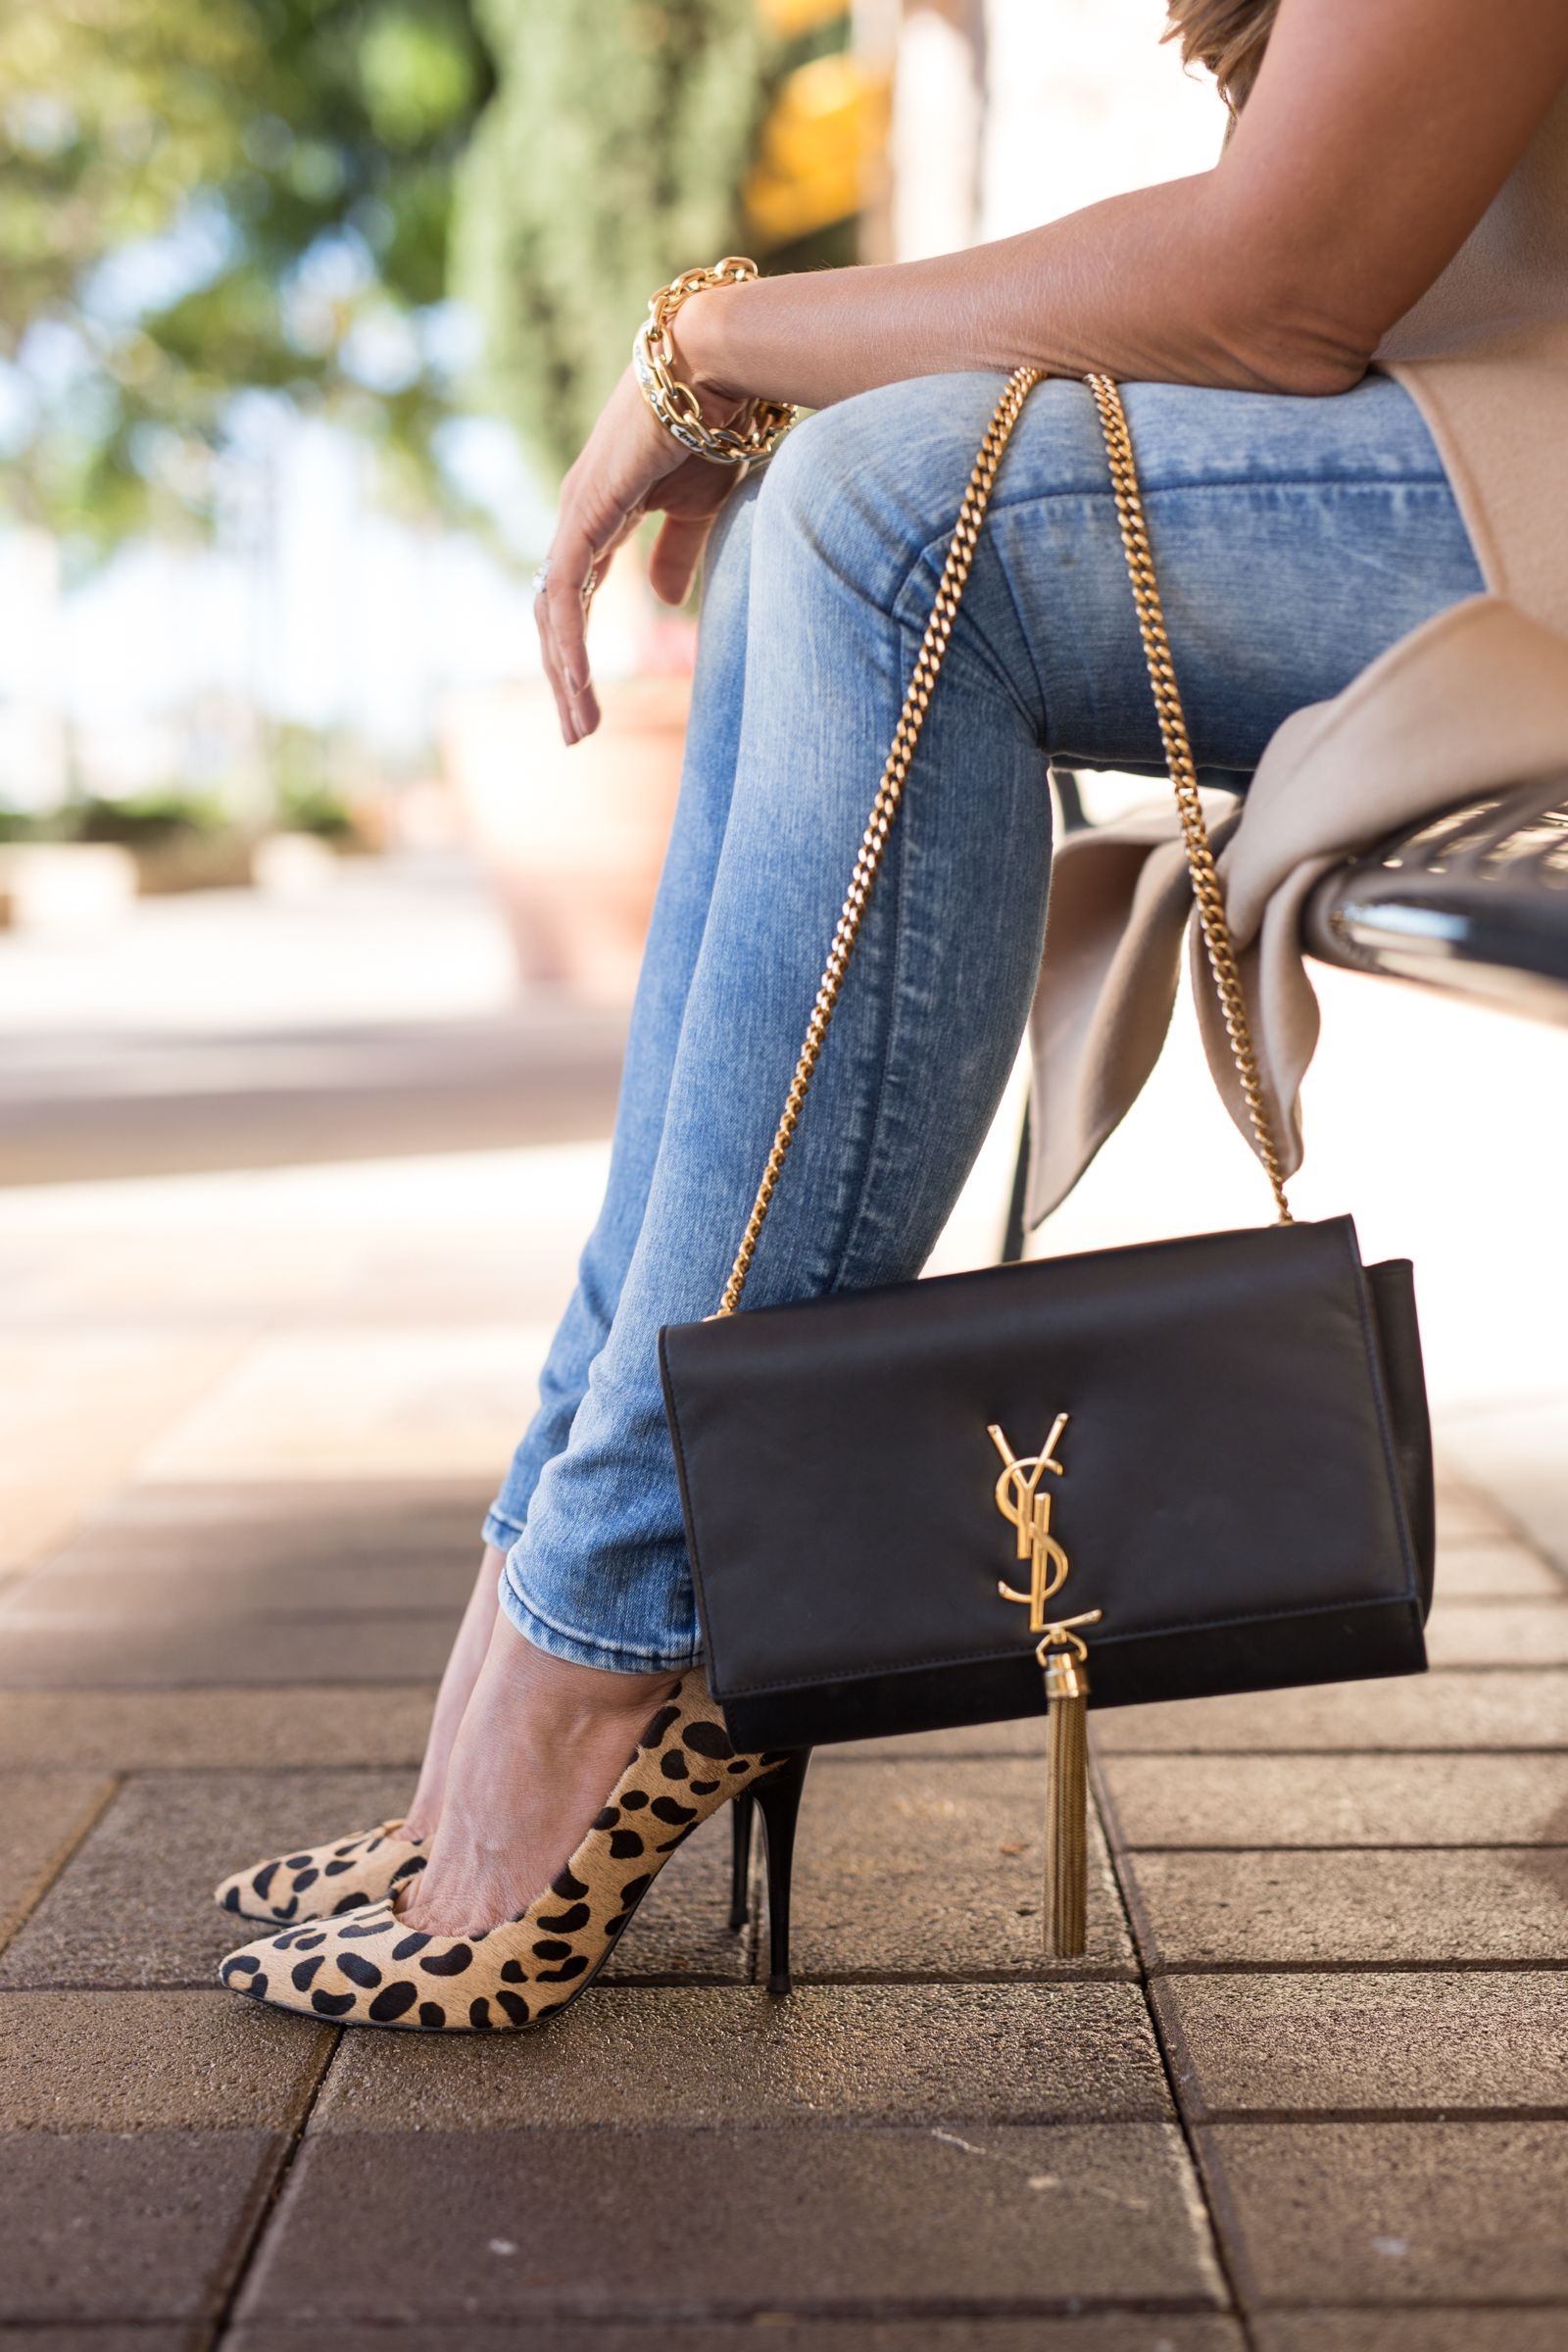 ysl tassel shoulder bag | YSL clutch | Pinterest | Tassels ...